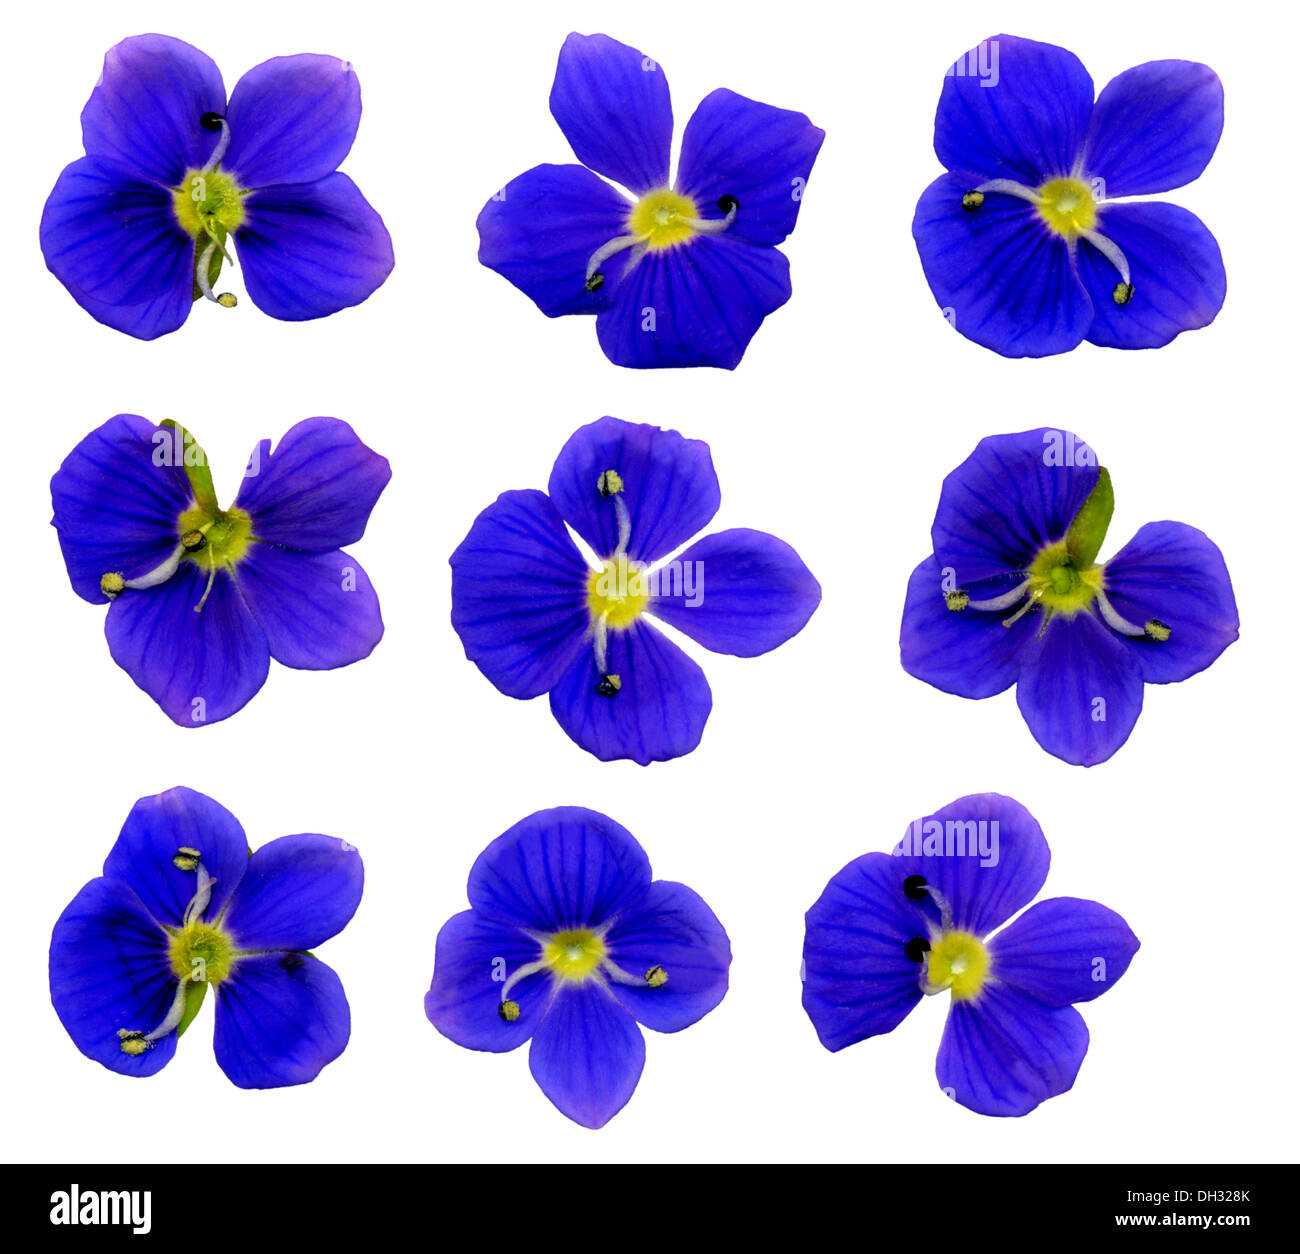 large speedwell flowers - Stock Image